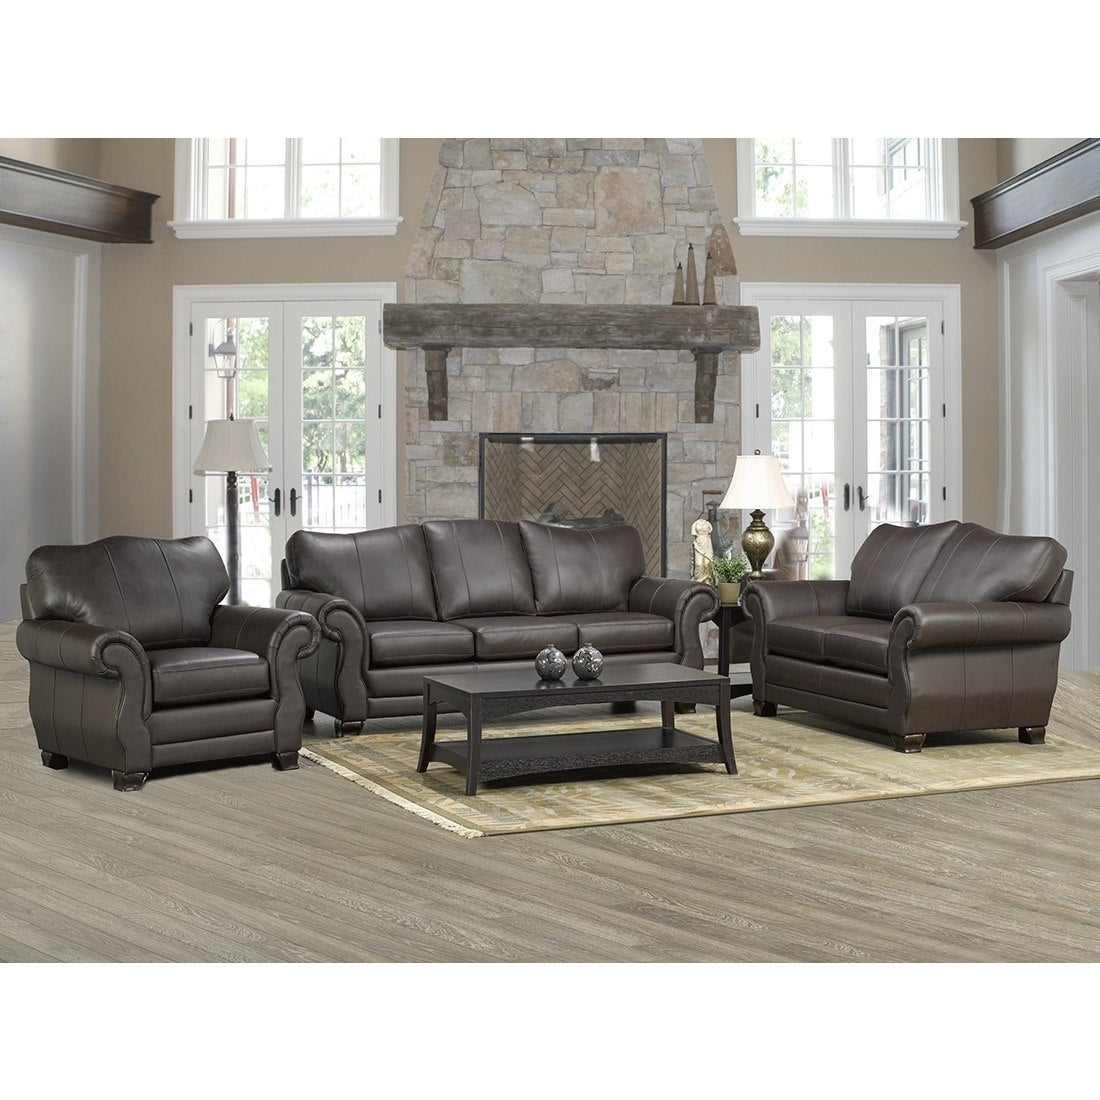 Madison Italian Leather Sofa Loveseat